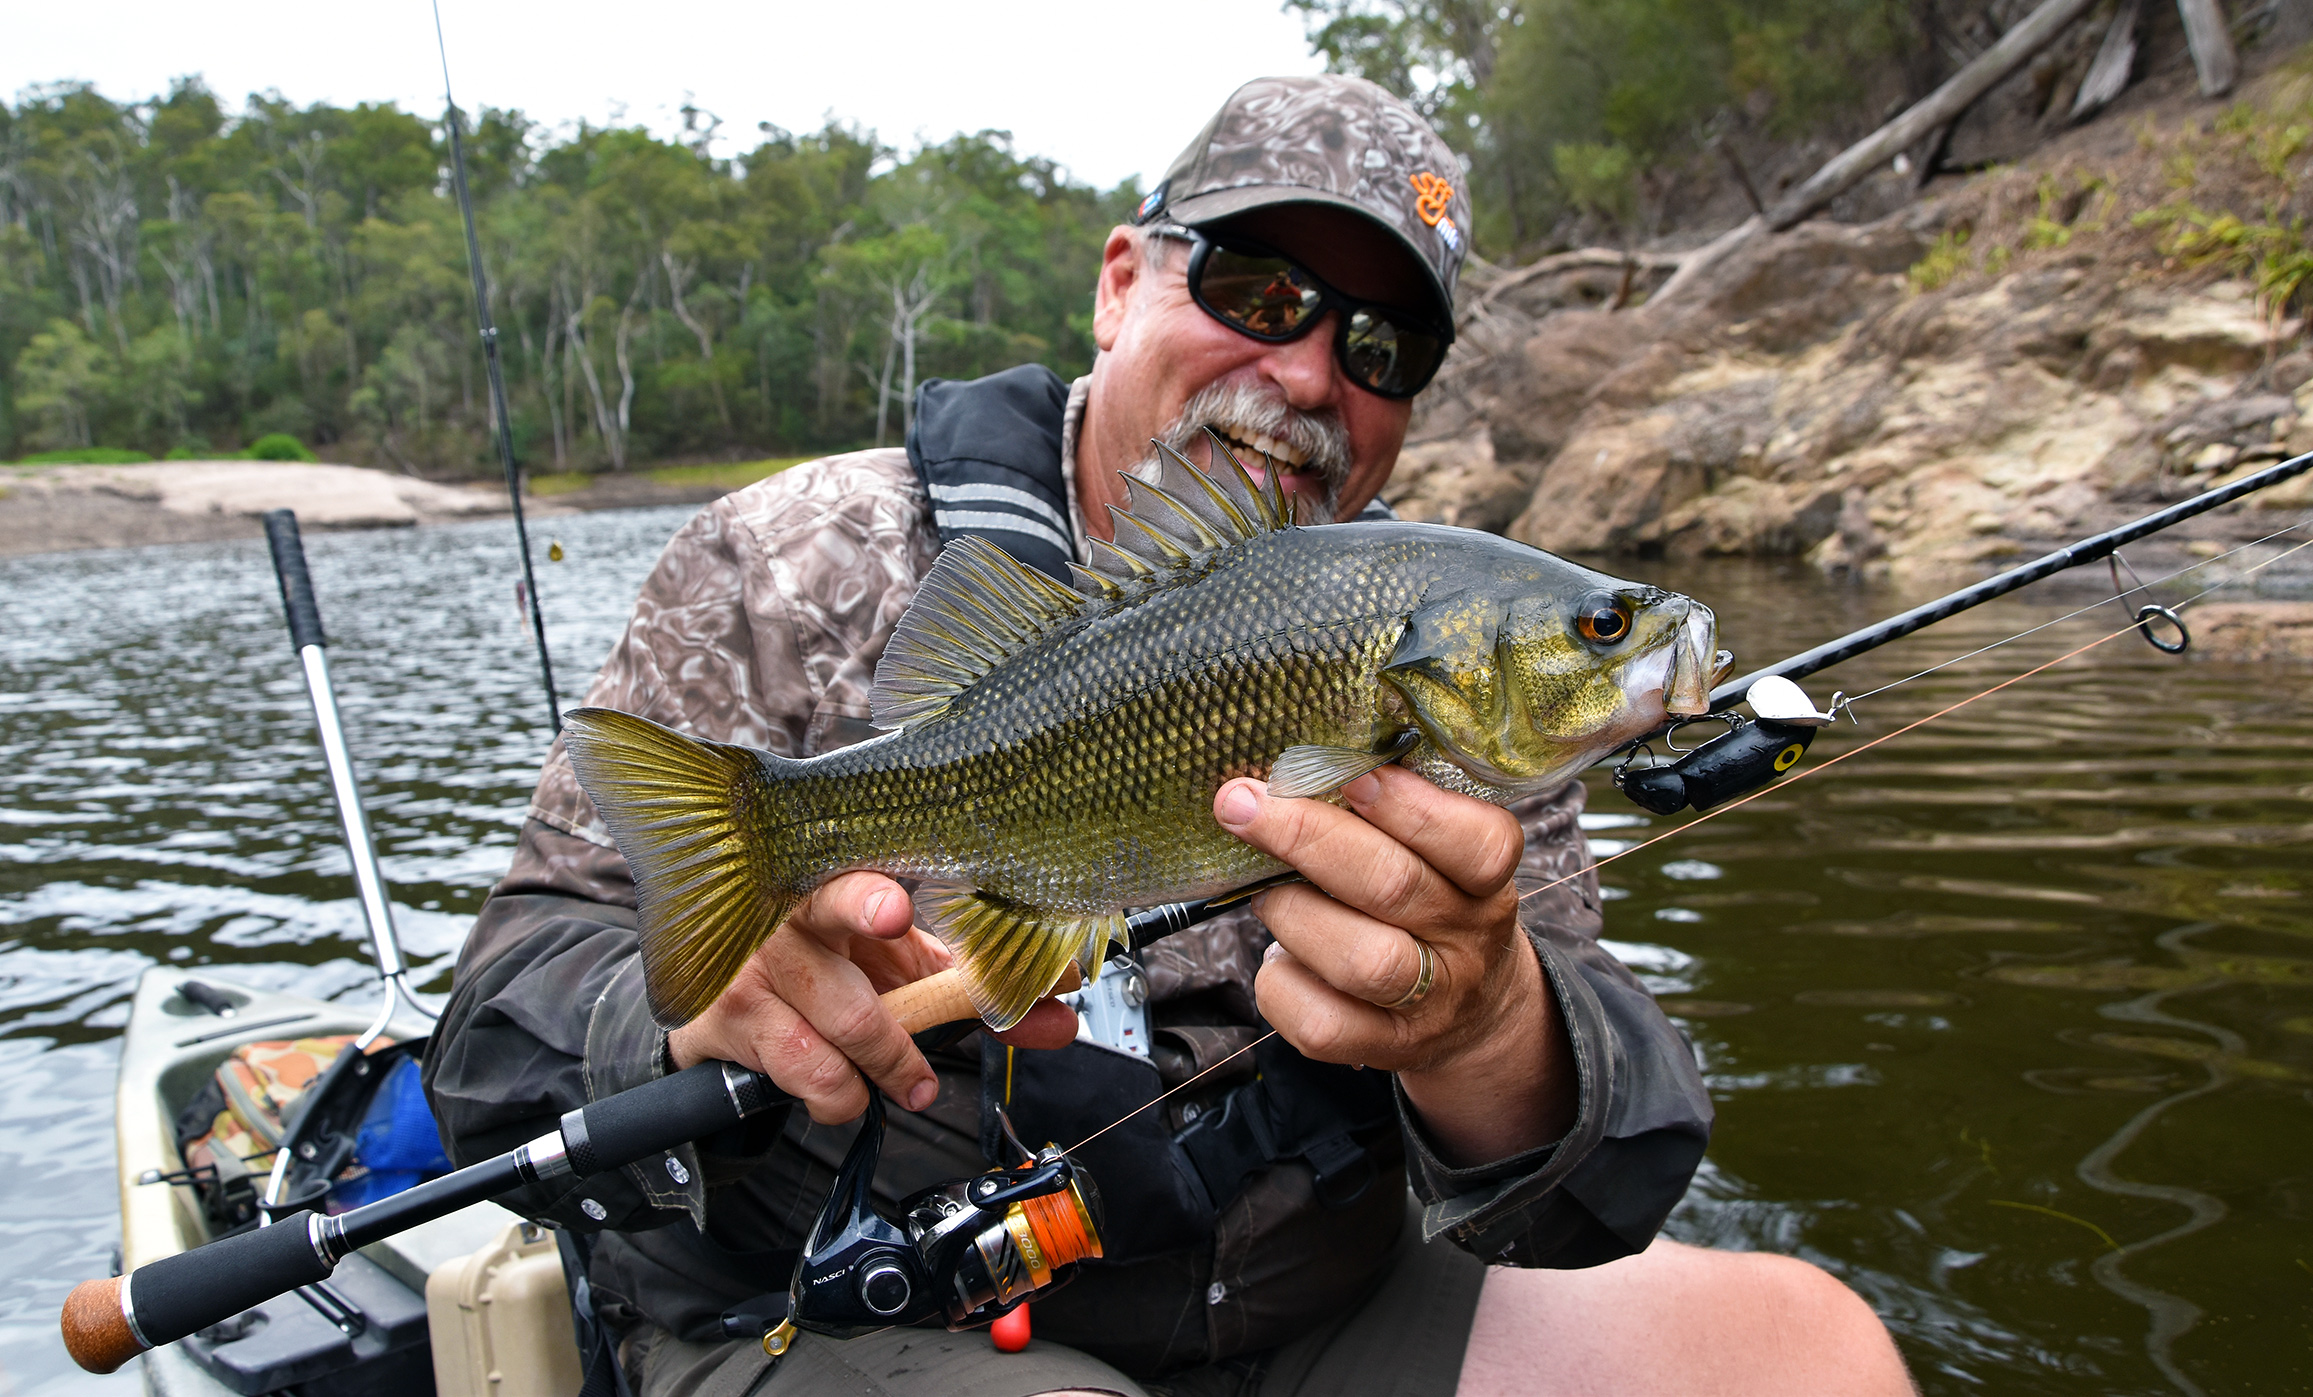 Starlo with a better-than-average Brogo Dam bass taken on a classic old surface lure. Despite their often modest size, the fish in this little lake punch well above their weight, so don't go under-gunned!